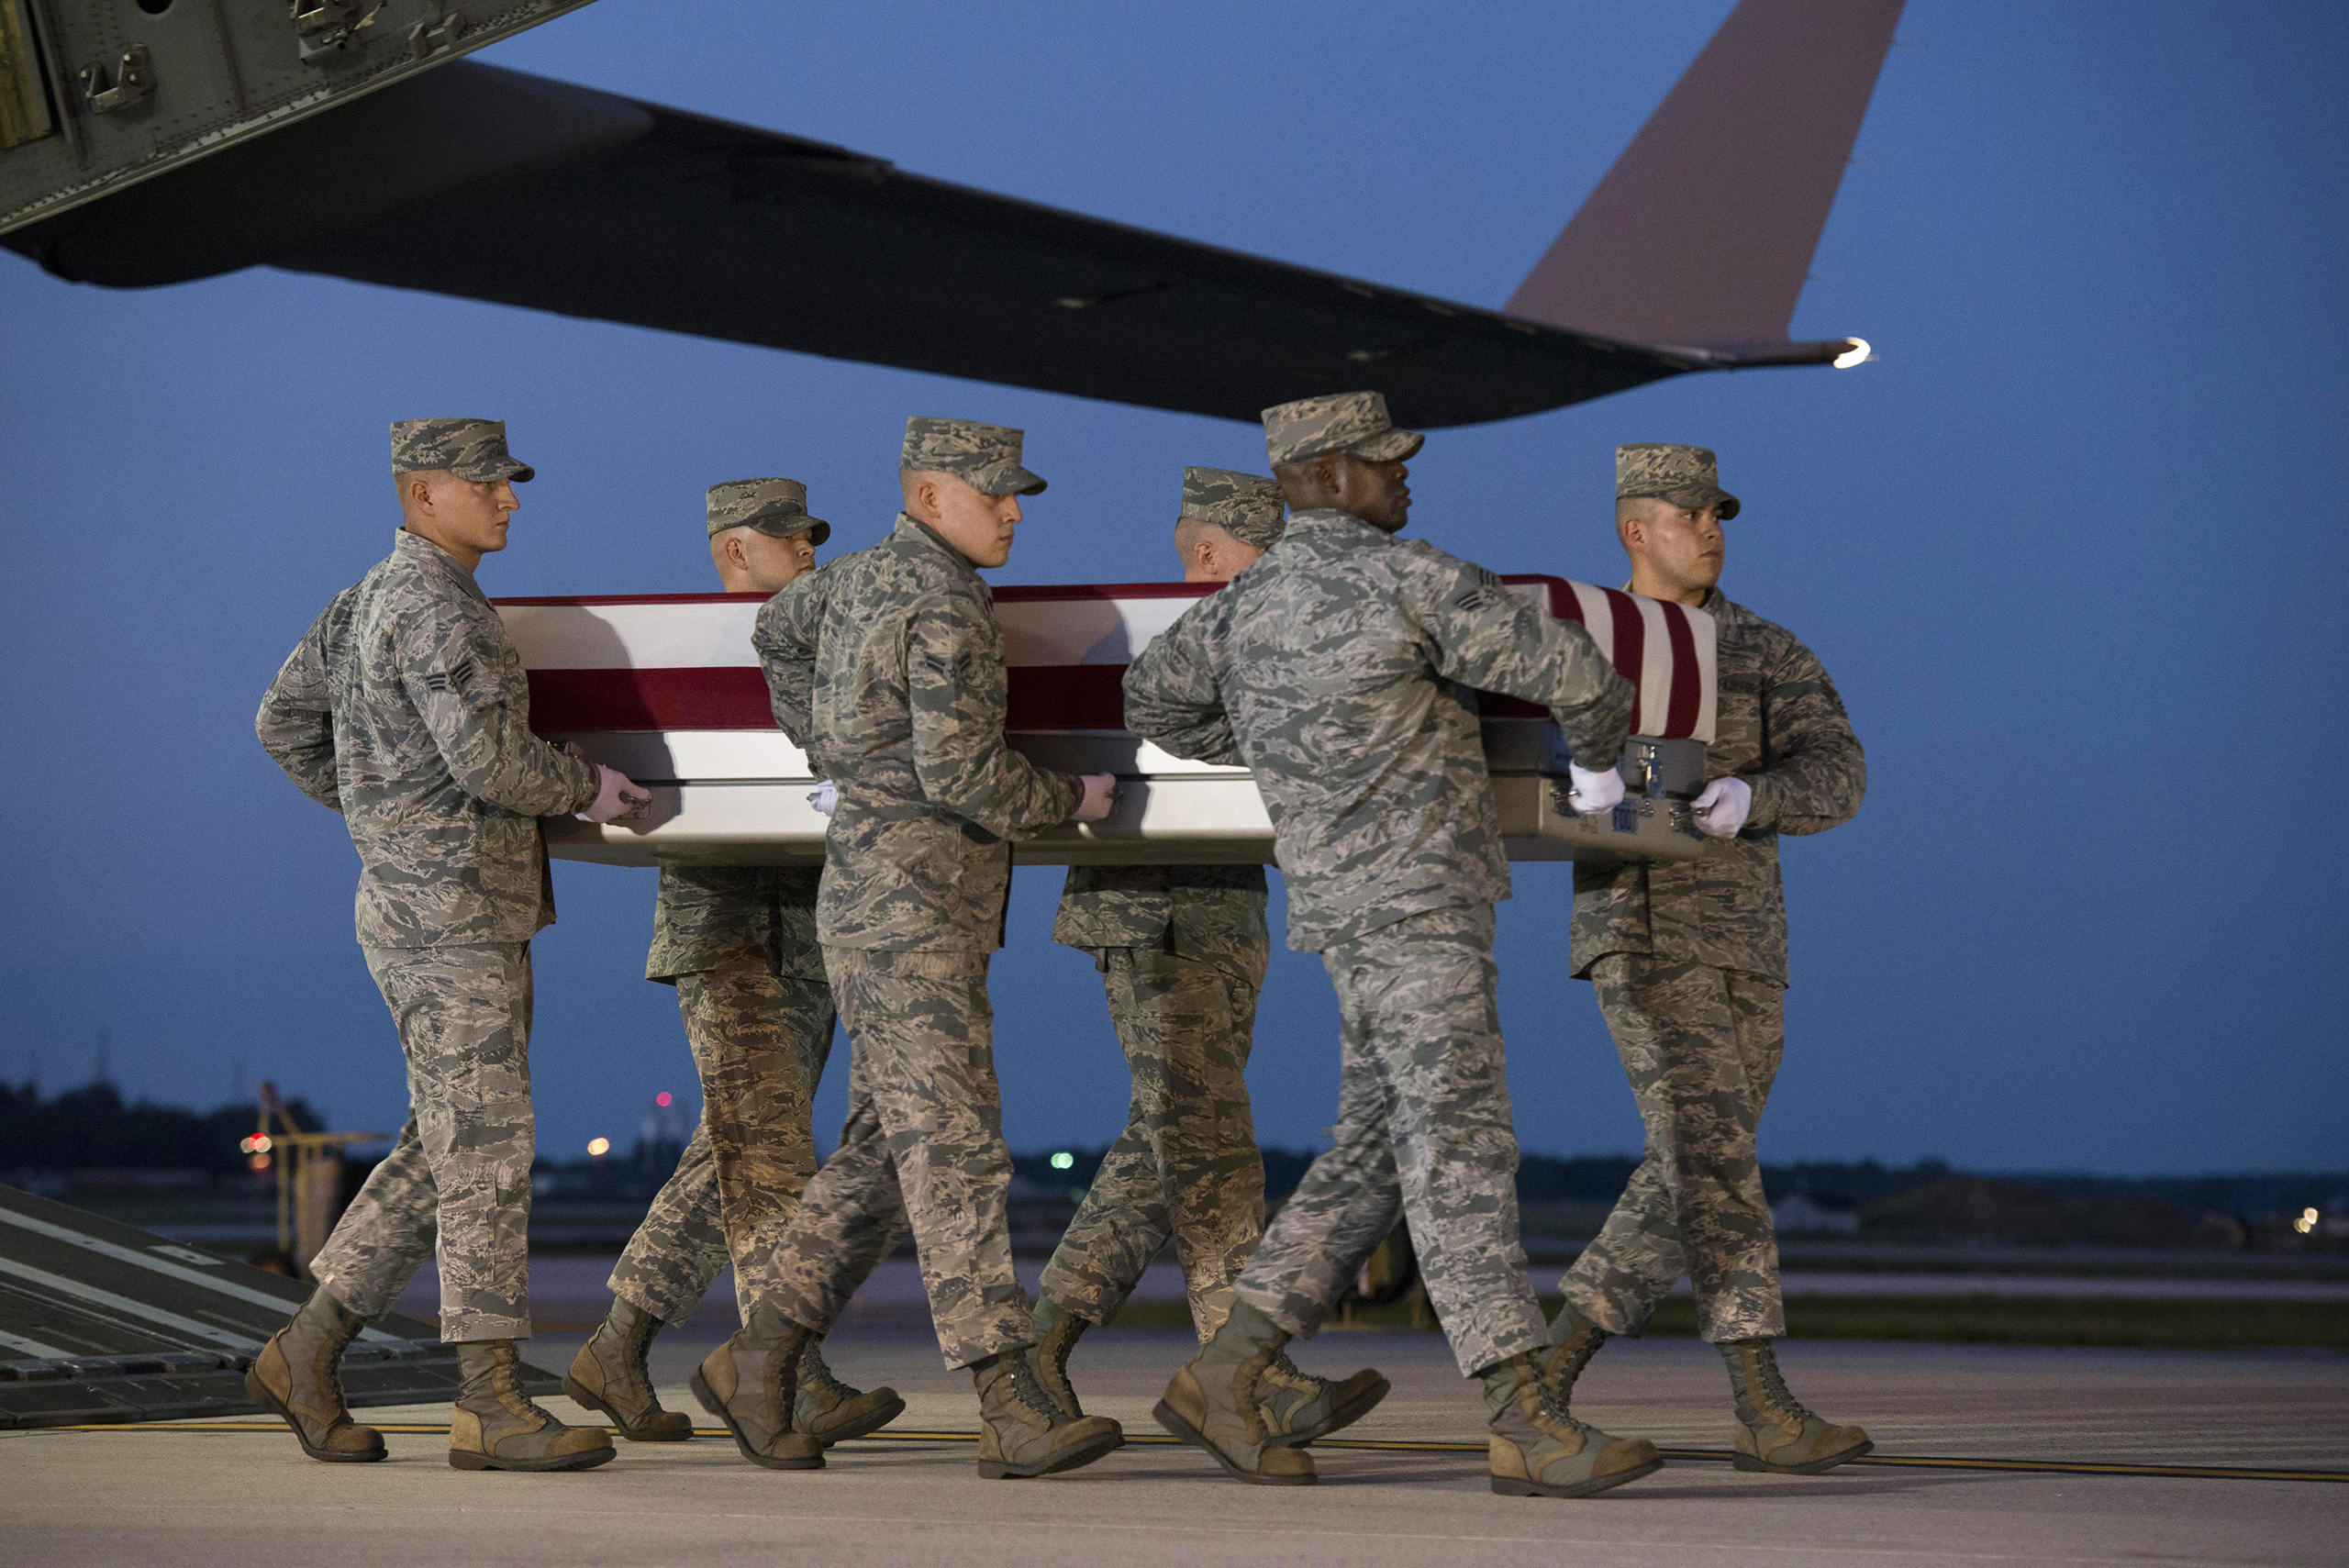 The body of Major Troy Gilbert returns to U.S. soil at Dover Air Force Base in Delaware in October after being held by Iraqis since 2006